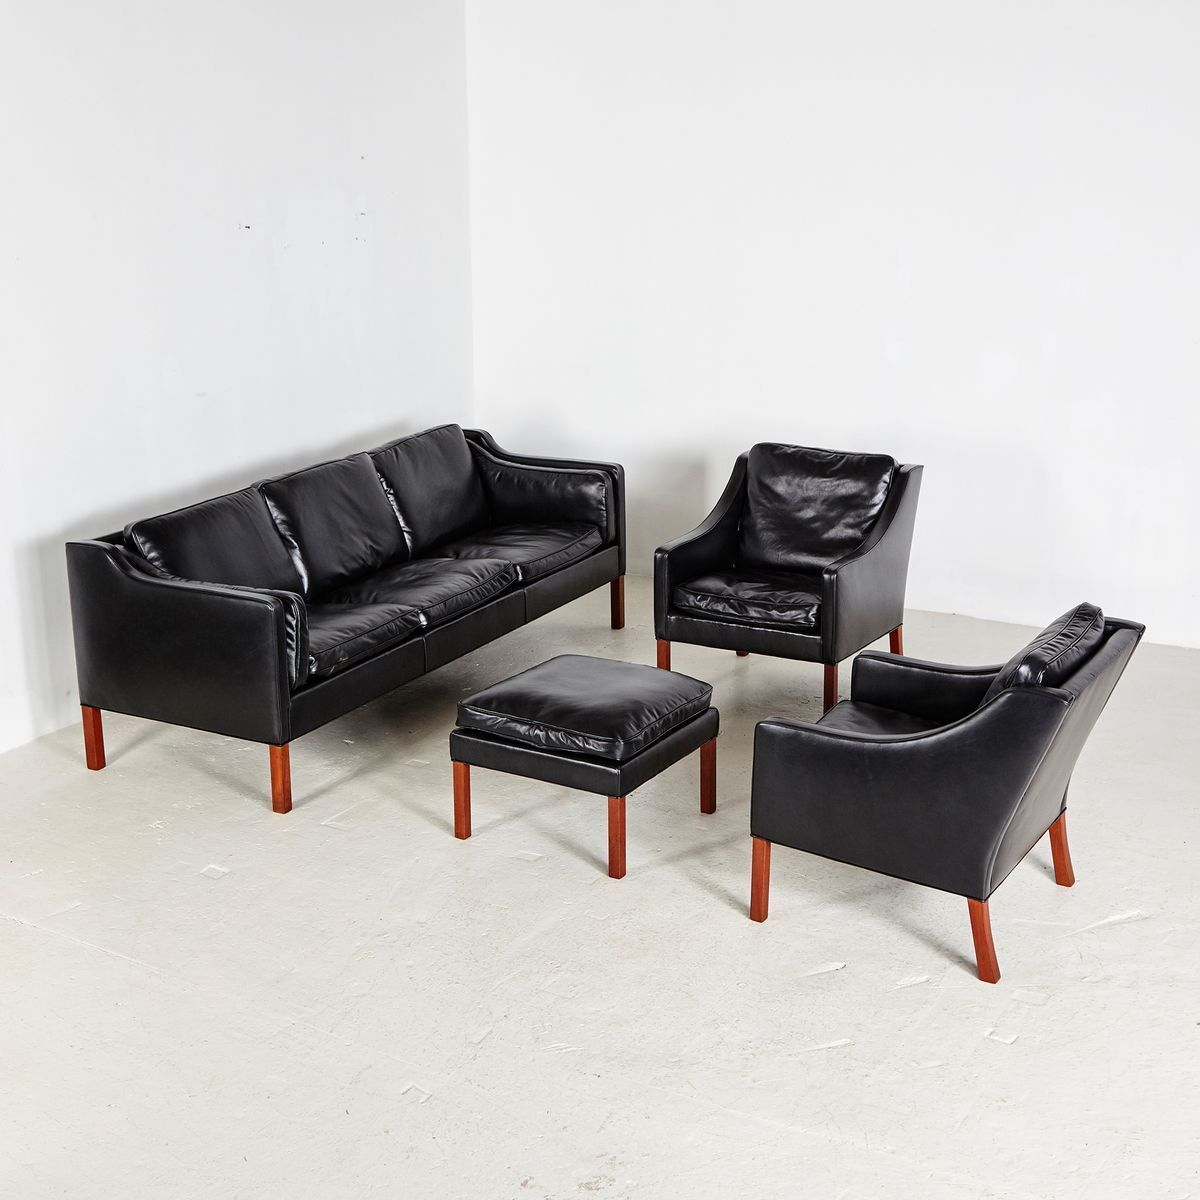 Model 2213 Leather Living Room Set By Børge Mogensen For Fredericia, 1962